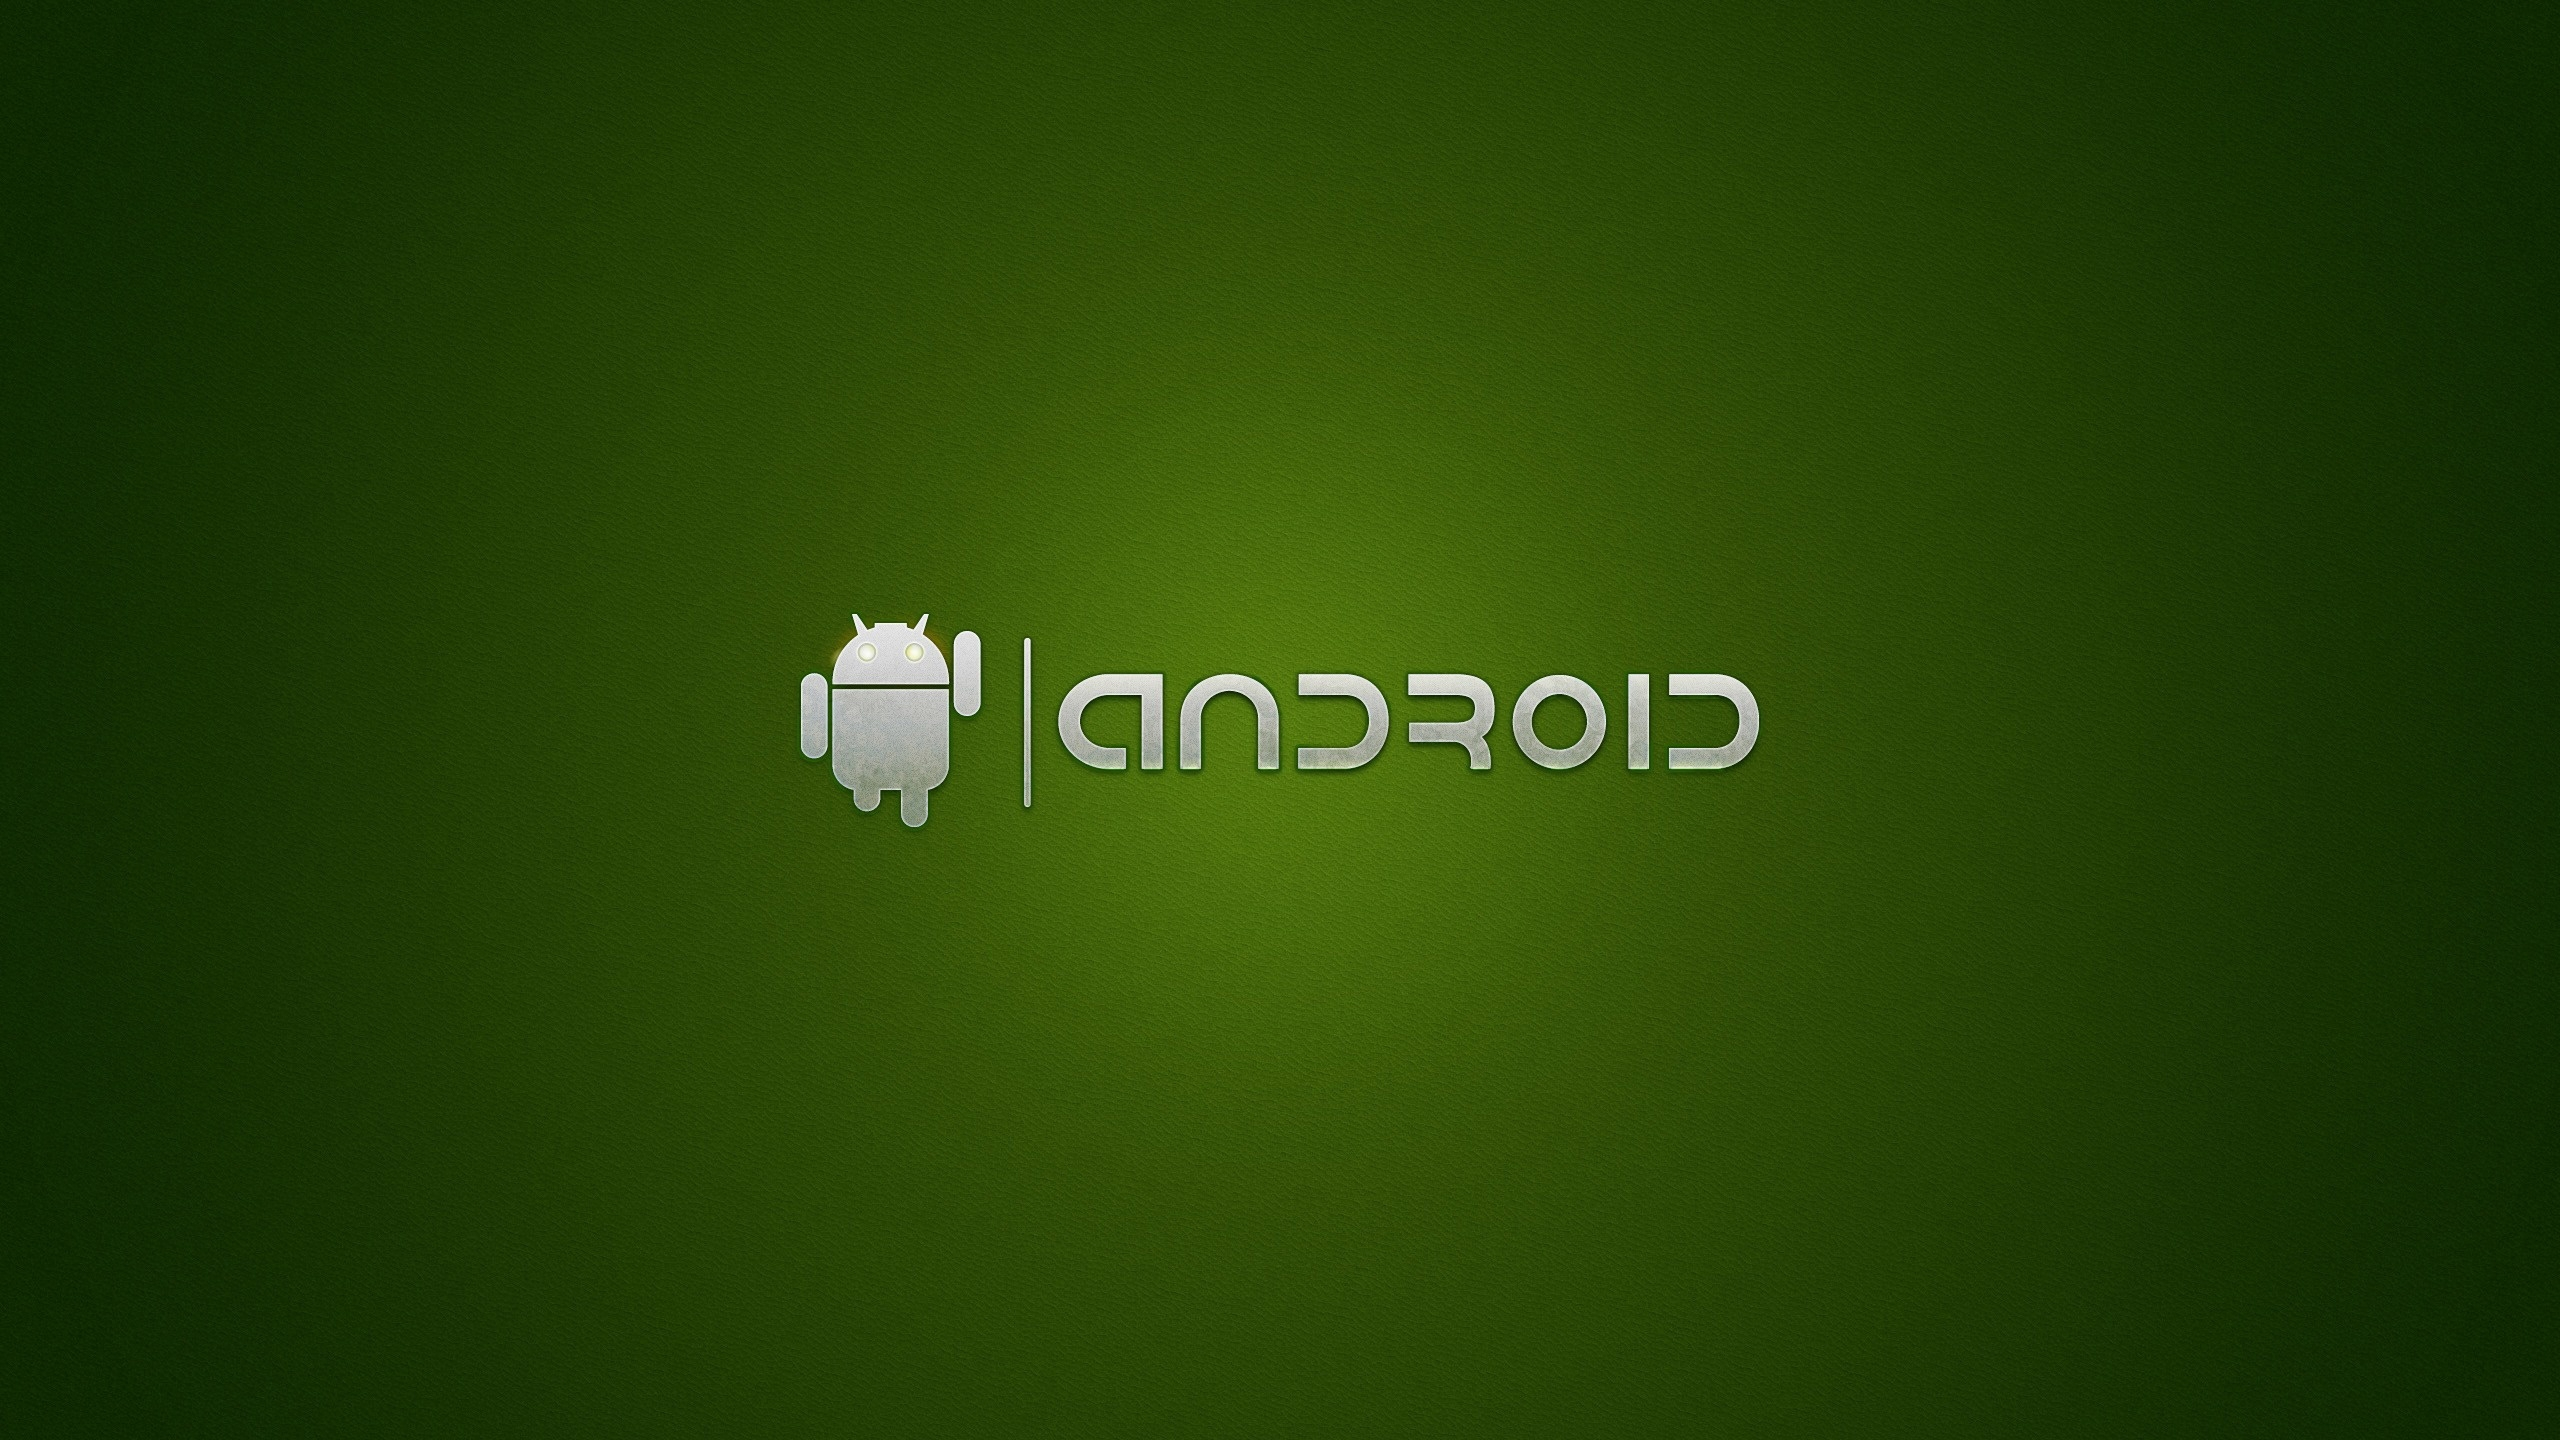 2560x1440 android dark green desktop pc and mac wallpaper